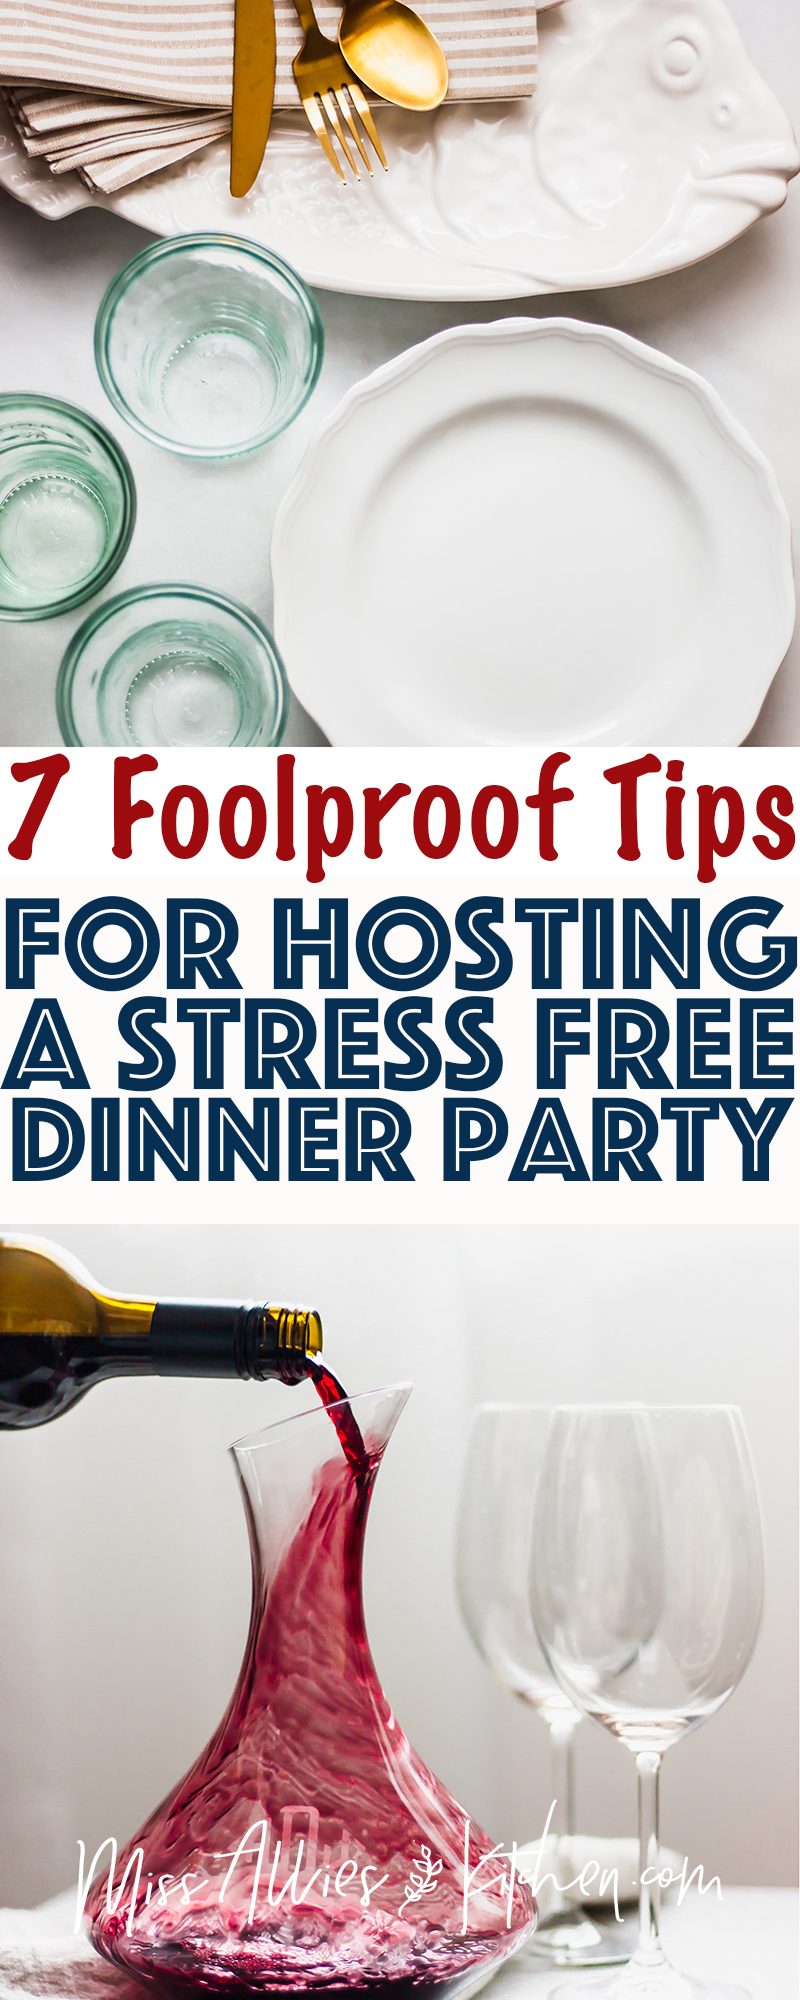 7 Foolproof Tips for Hosting a Stress Free Dinner Party